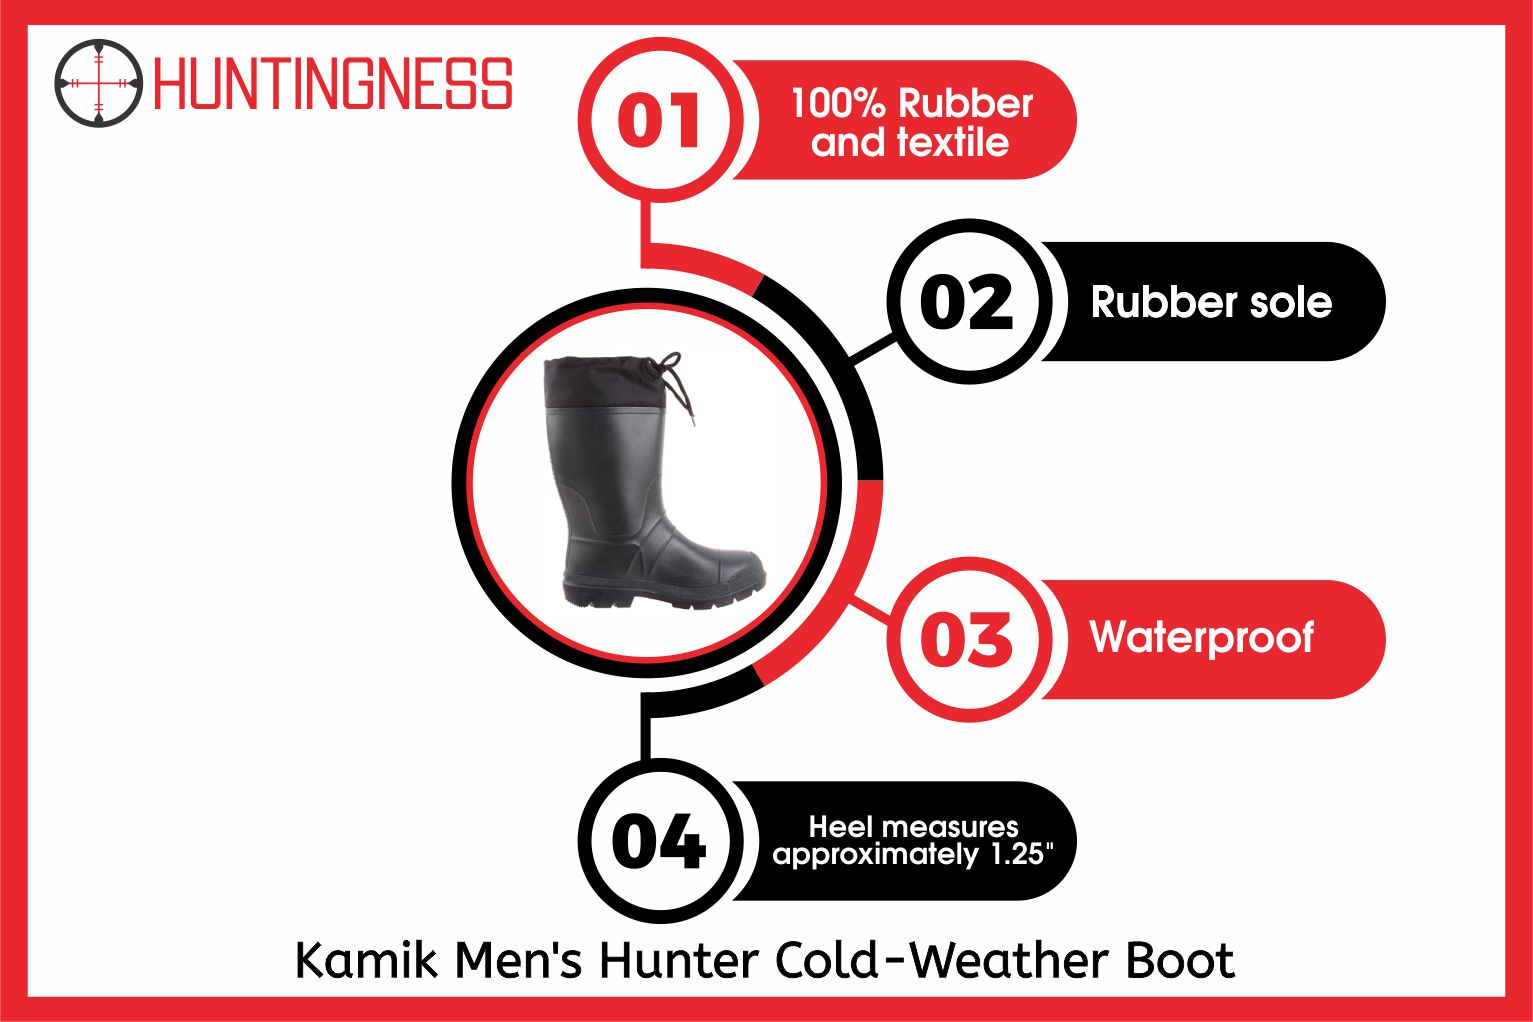 Kamik Men's - Best Hunting Cold Weather Boot Infographics